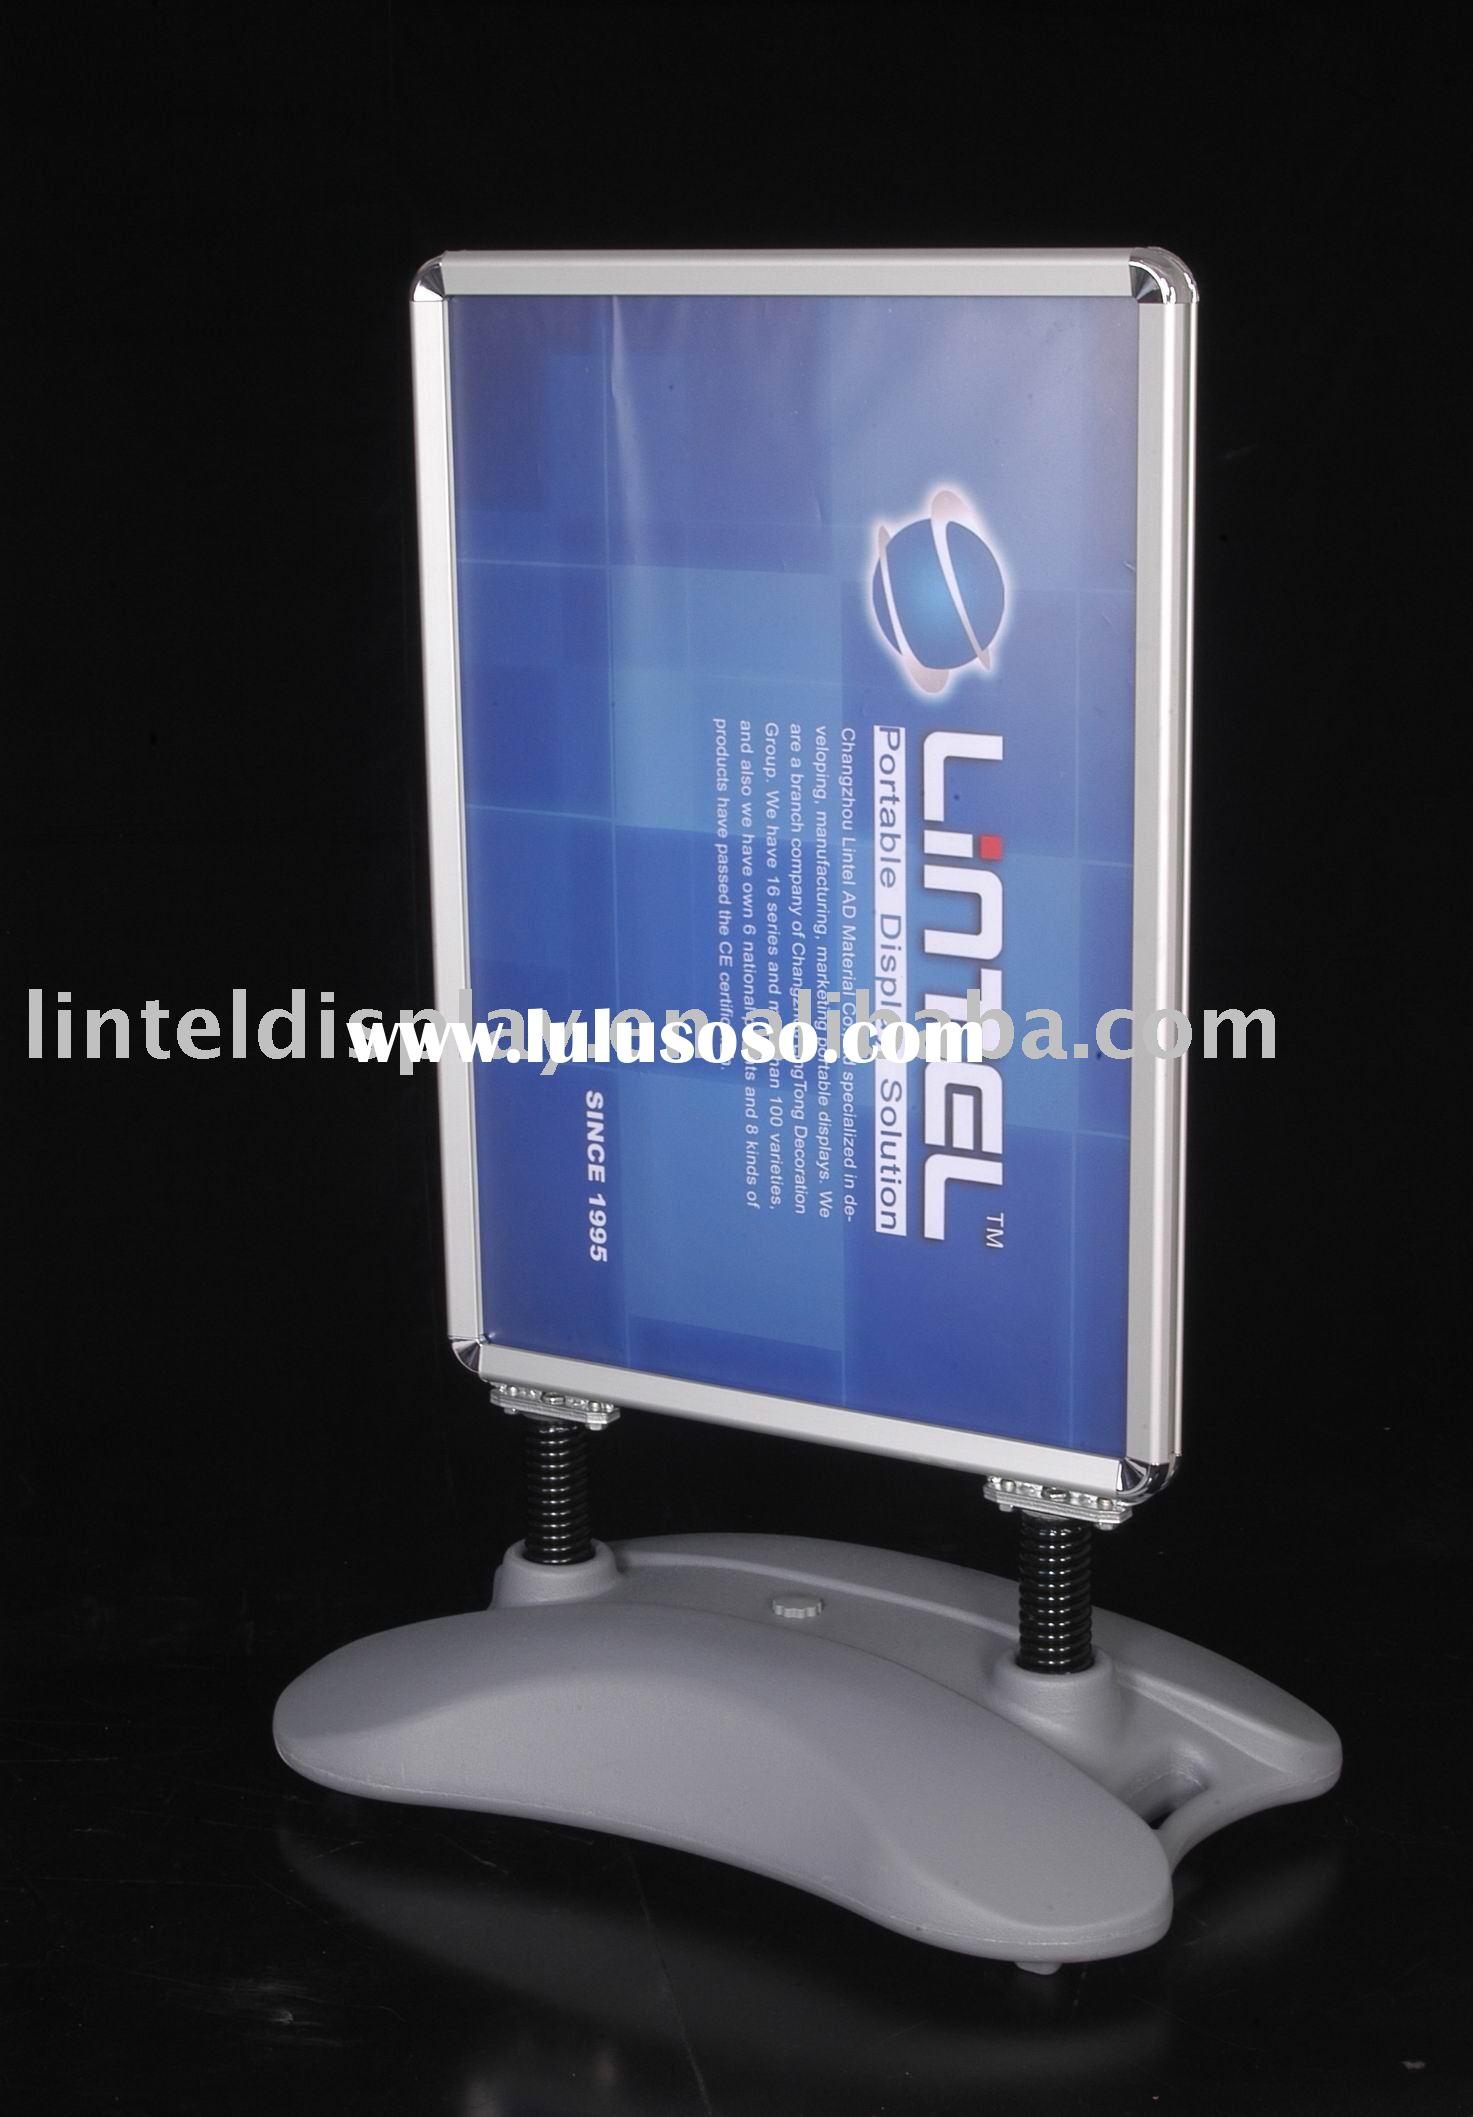 springer sidewalk sign display board LT-10G